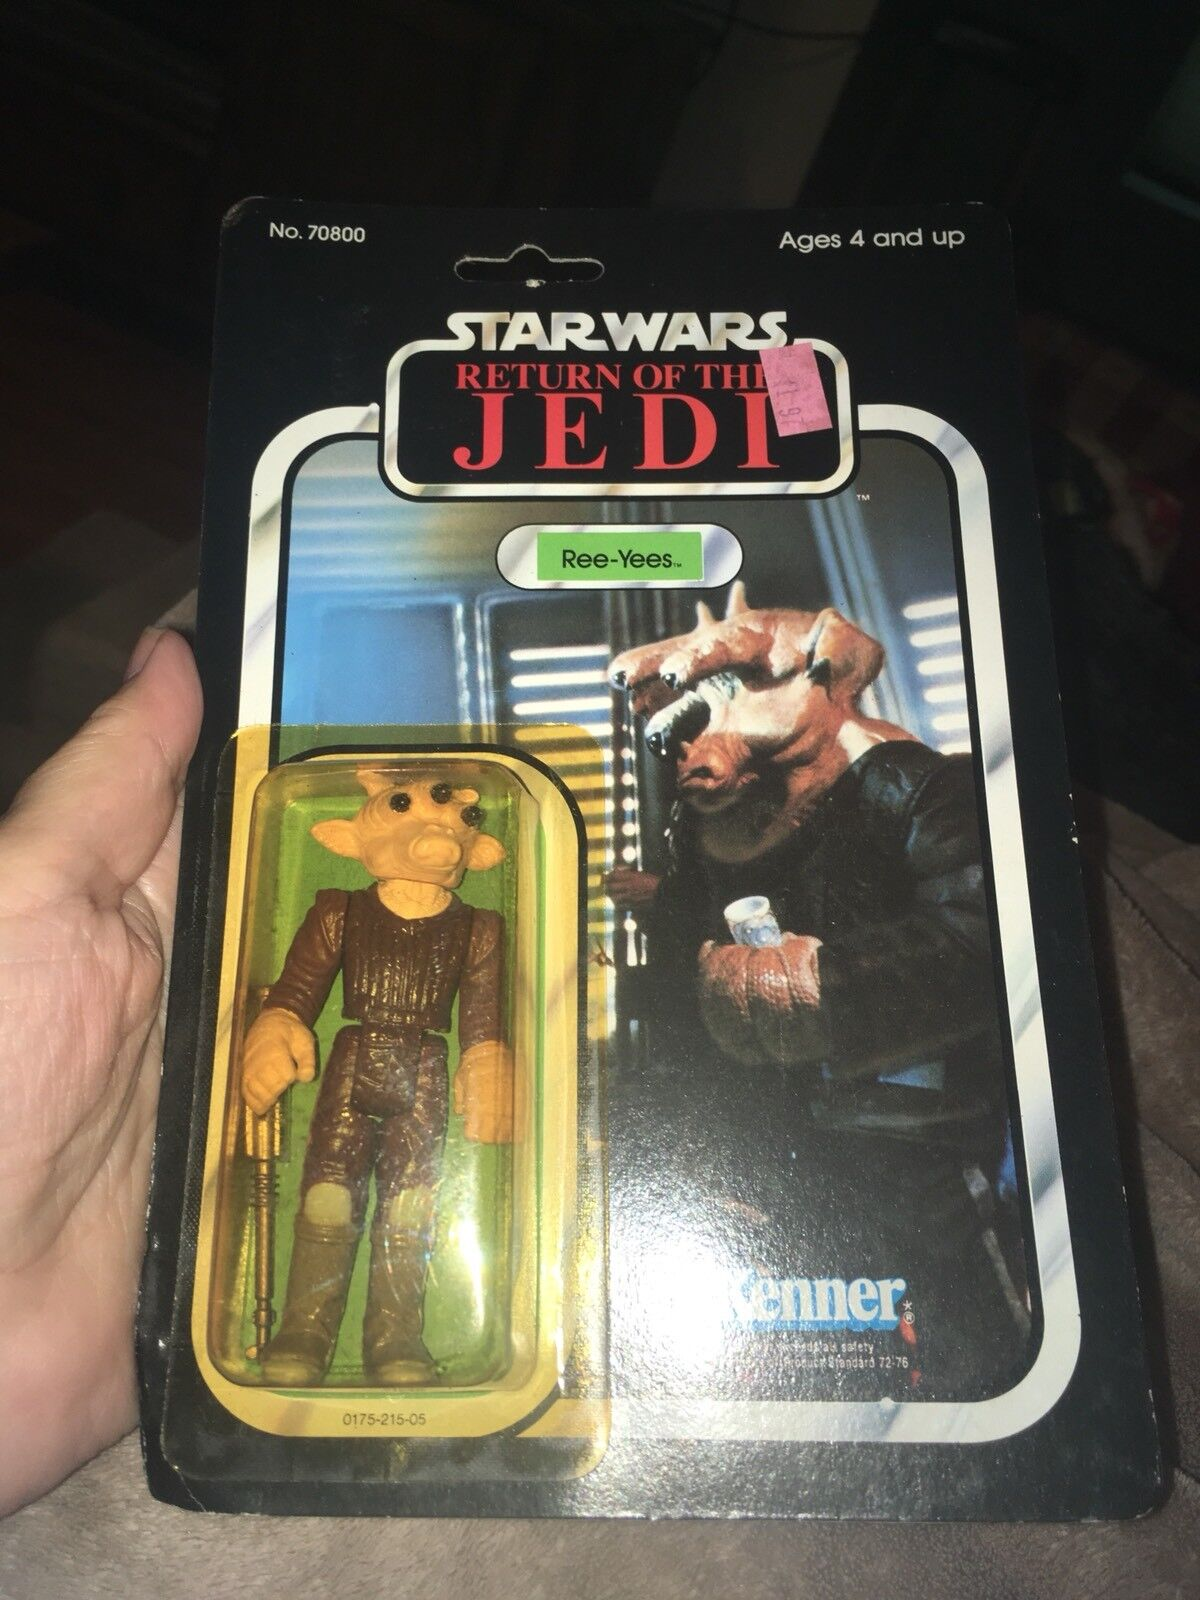 1983 Star Wars Return of the Jedi Ree-Yees by Kenner